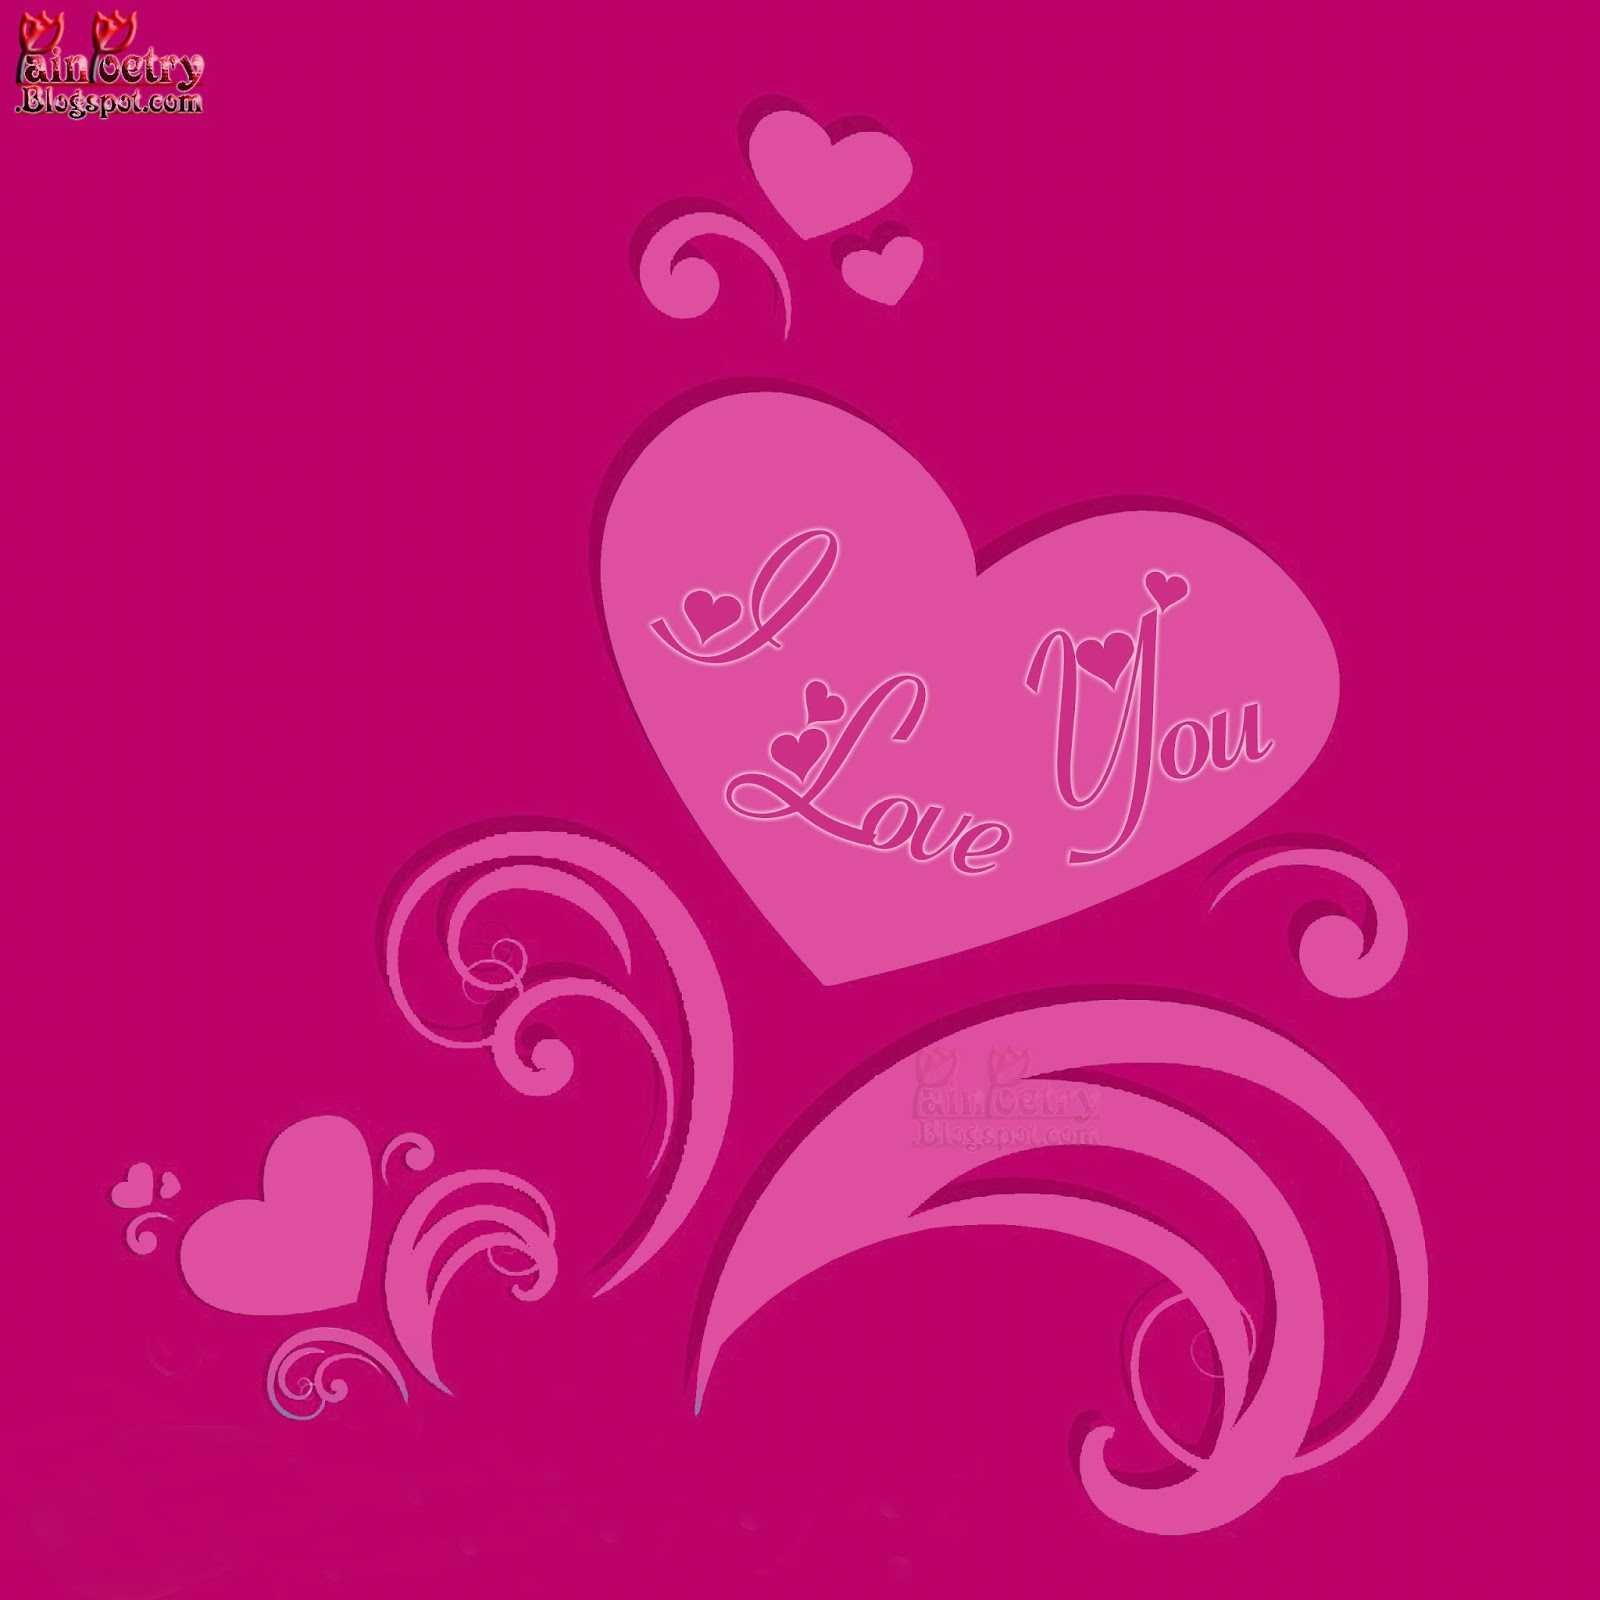 Happy-Valentines-Day-Wallpaper-Wishes-Love-Wallpaper-Image-HD-Wide